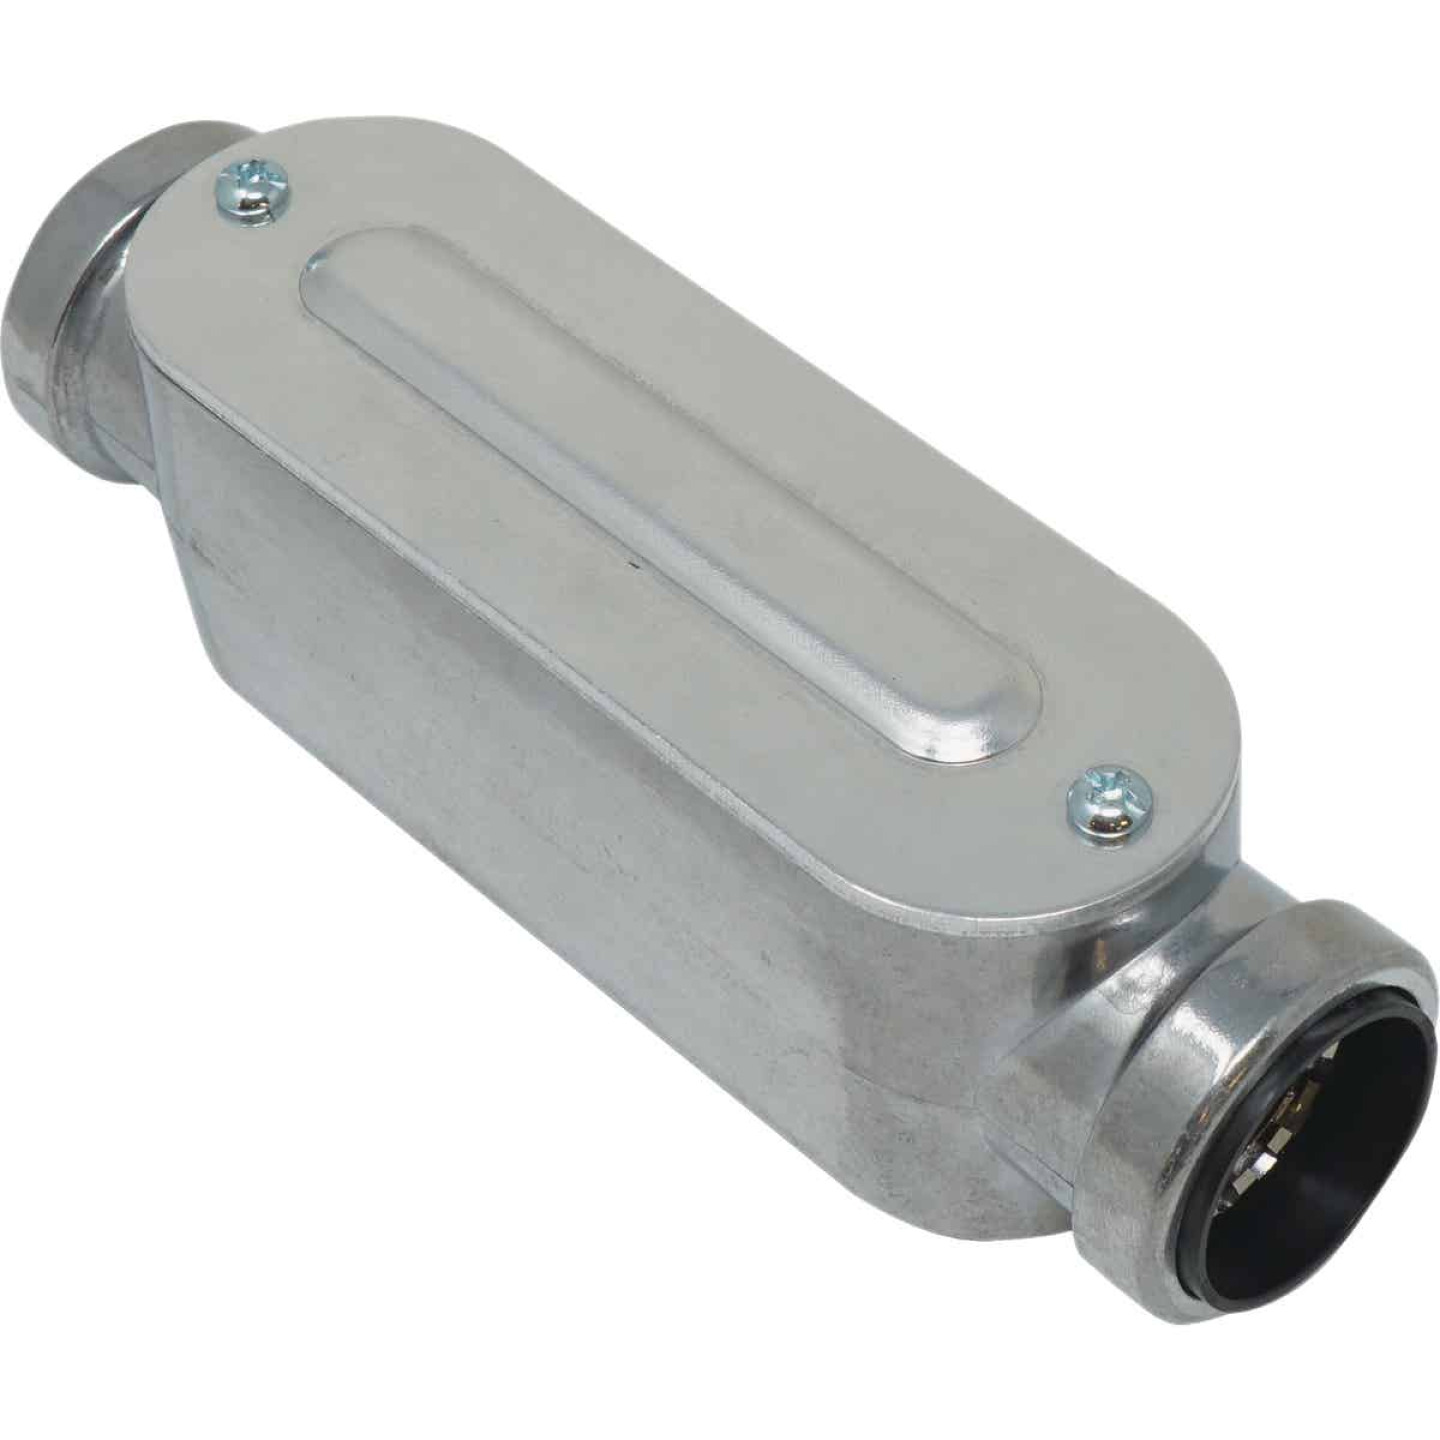 Southwire SimPush 1/2 In. EMT Push-To-Install Type-C Conduit Body Image 1